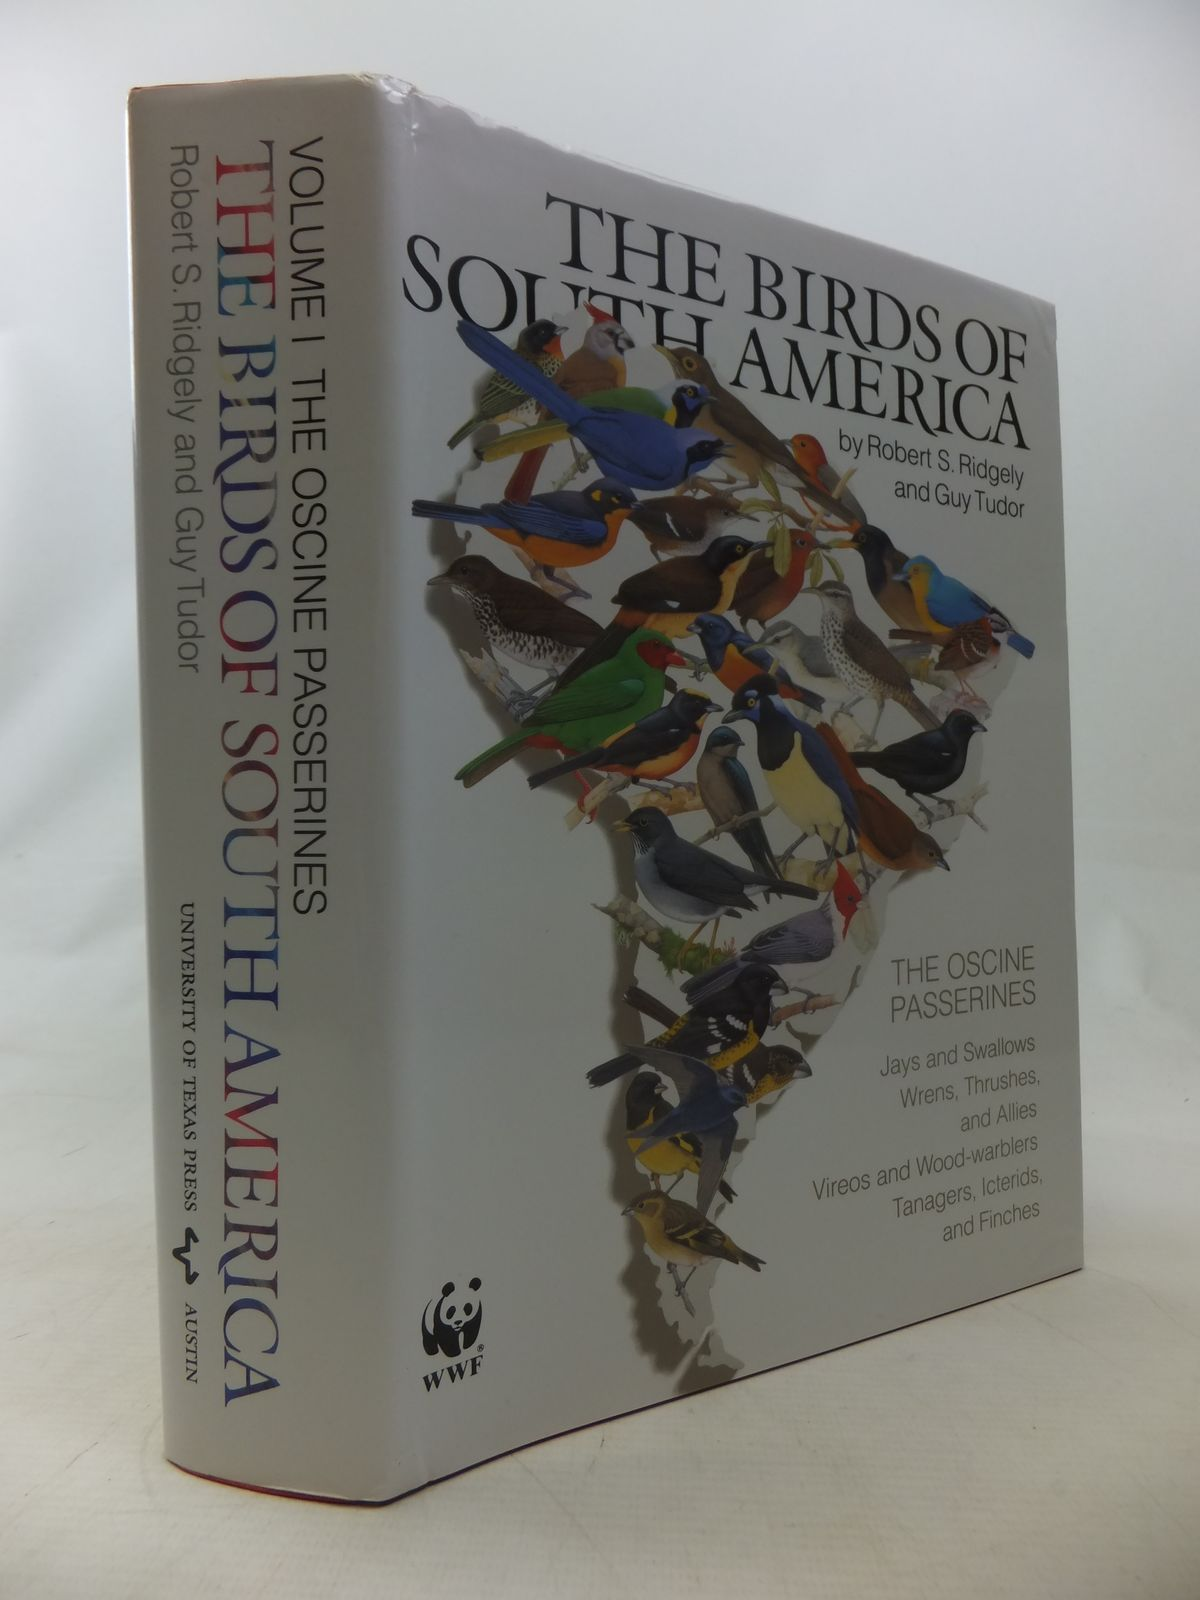 Photo of THE BIRDS OF SOUTH AMERICA VOLUME I THE OSCINE PASSERINES written by Ridgely, Robert S.<br />Tudor, Guy published by University of Texas Press (STOCK CODE: 1811069)  for sale by Stella & Rose's Books